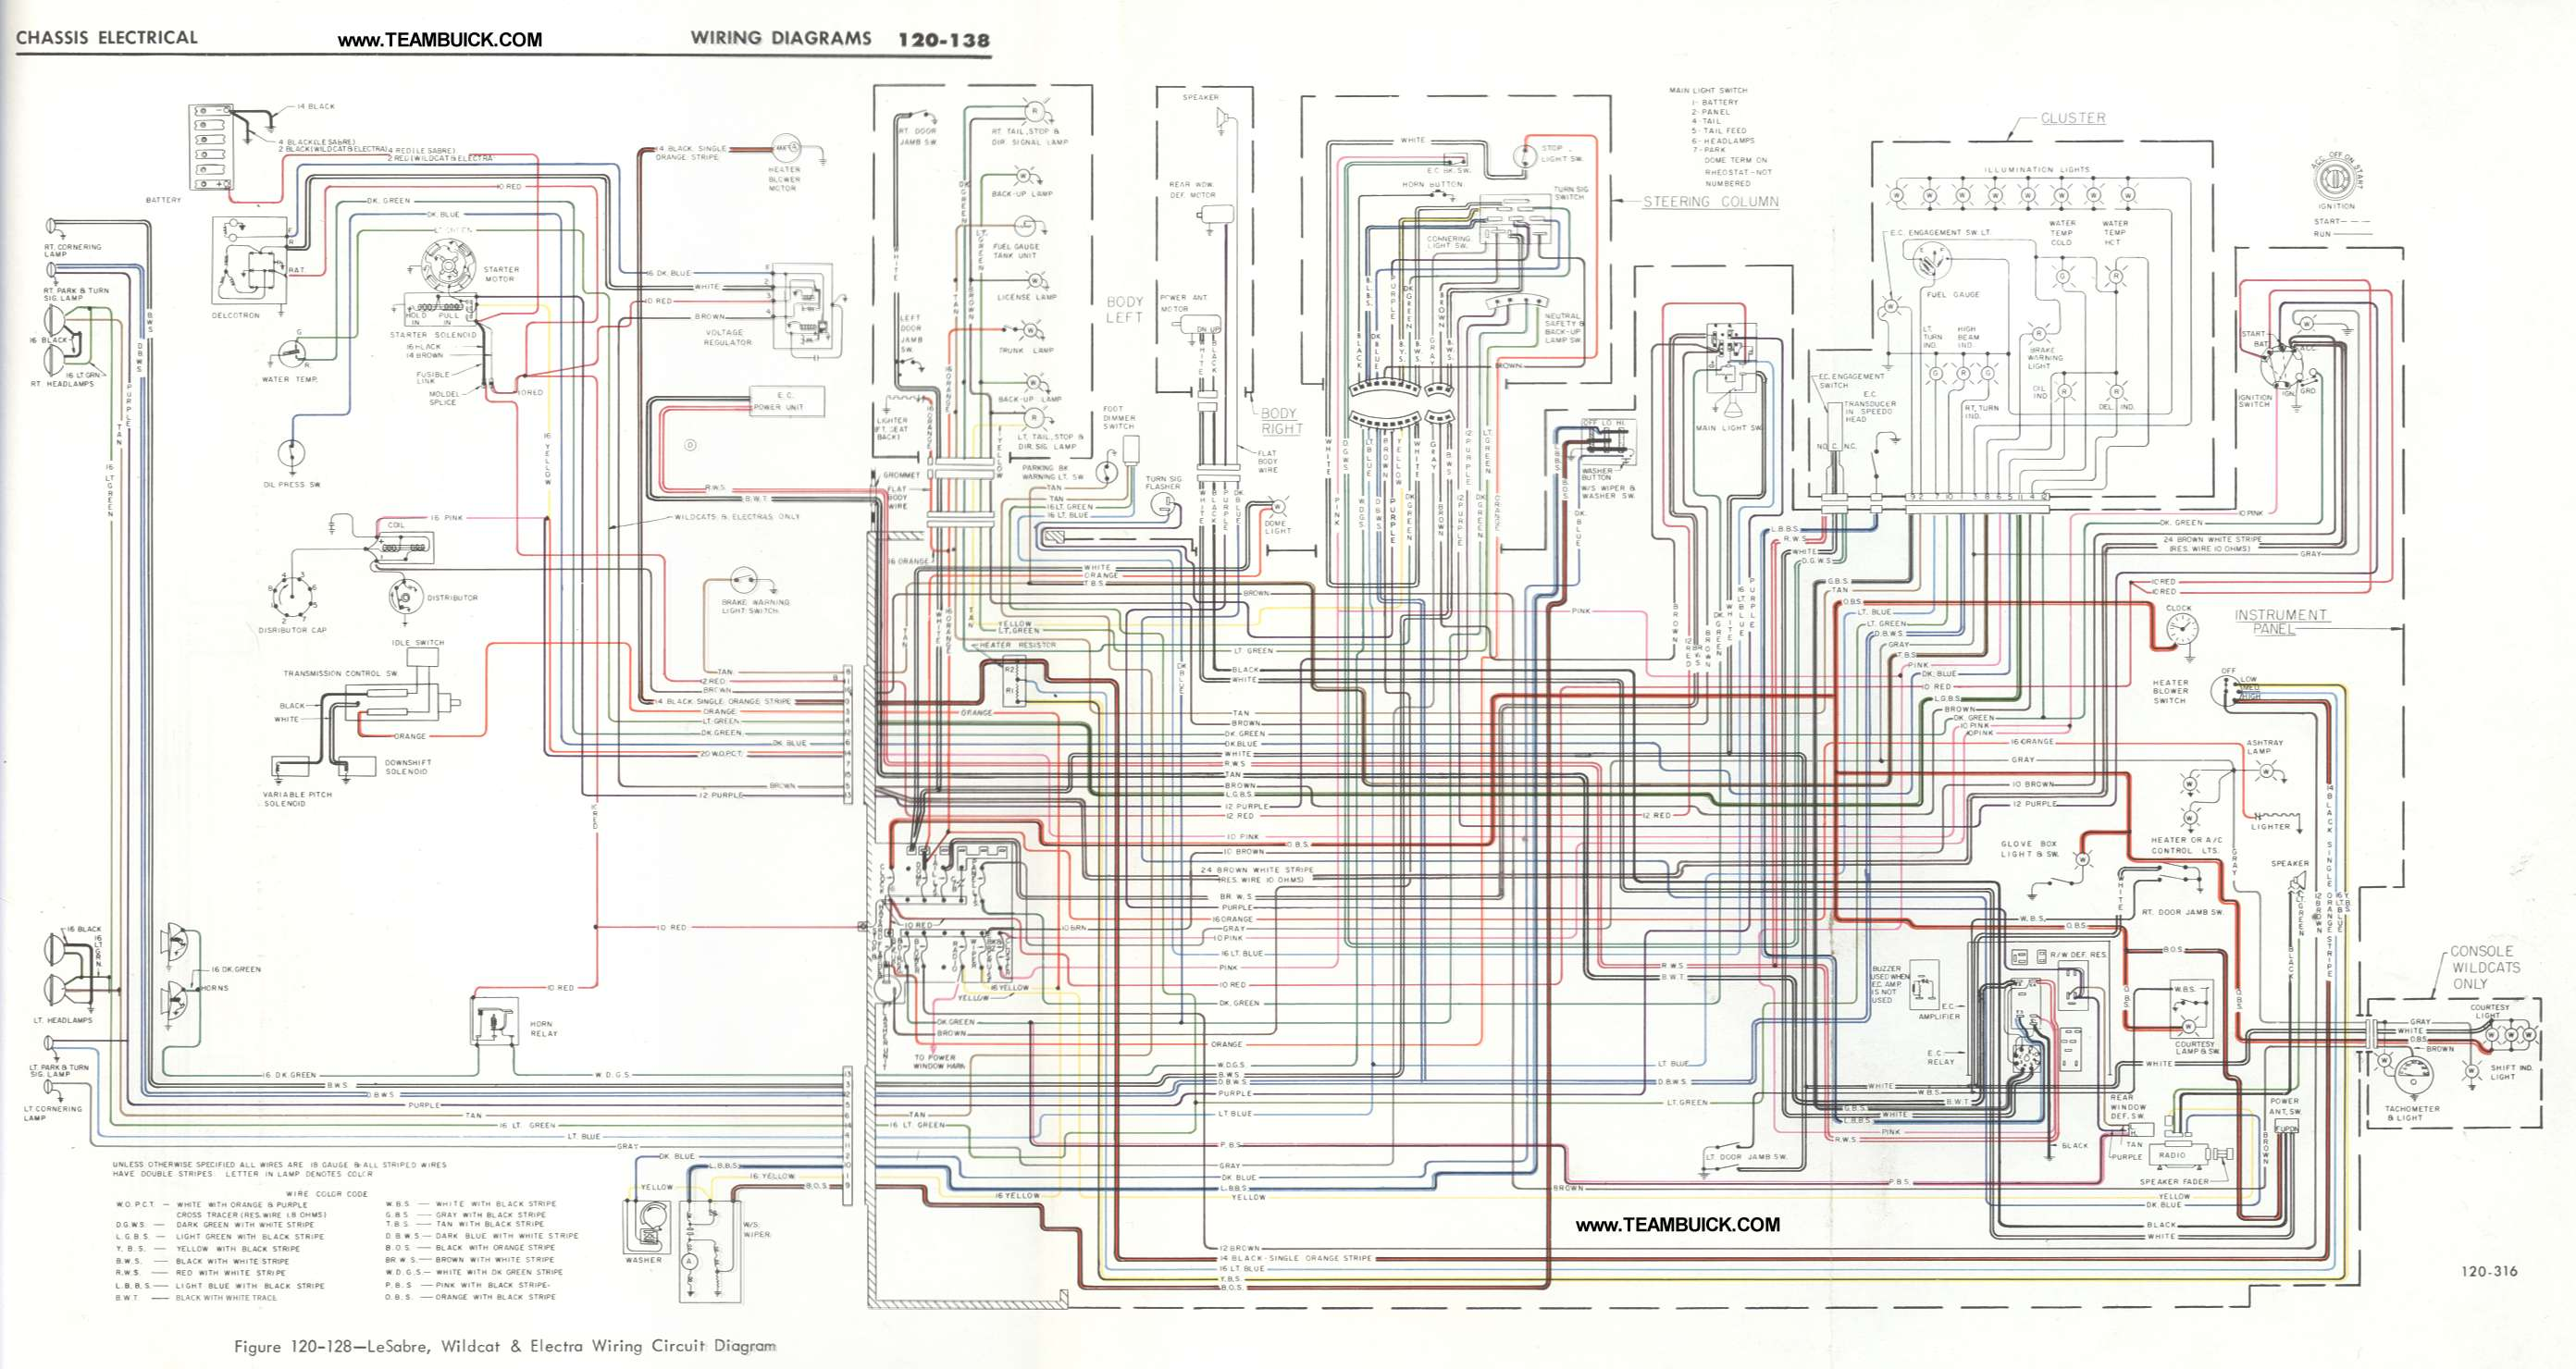 Arctic Cat Wildcat 700 Efi Wiring Diagram : wrg 4671 arctic cat wildcat wiring diagrams ~ Yuntae.com Fishing and Equipments